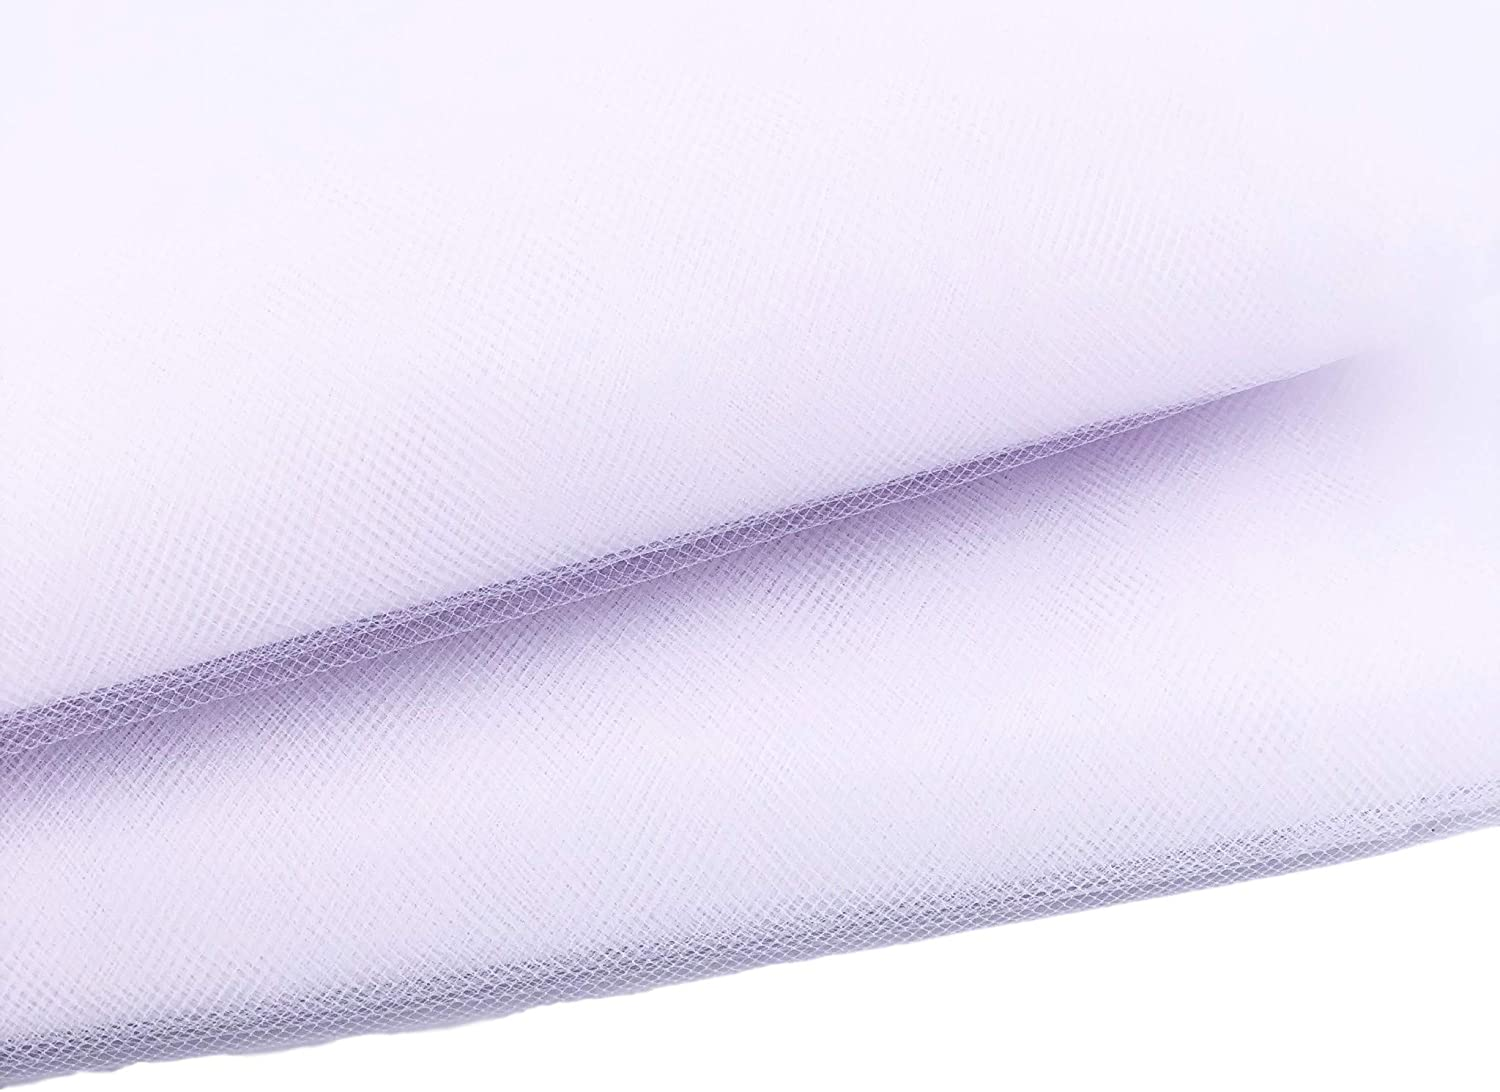 Tulle Fabric Roll Bolt 54 inch by 20 Yards (60 Feet) Wedding Party Decoration Bridal Shower Tutu, White